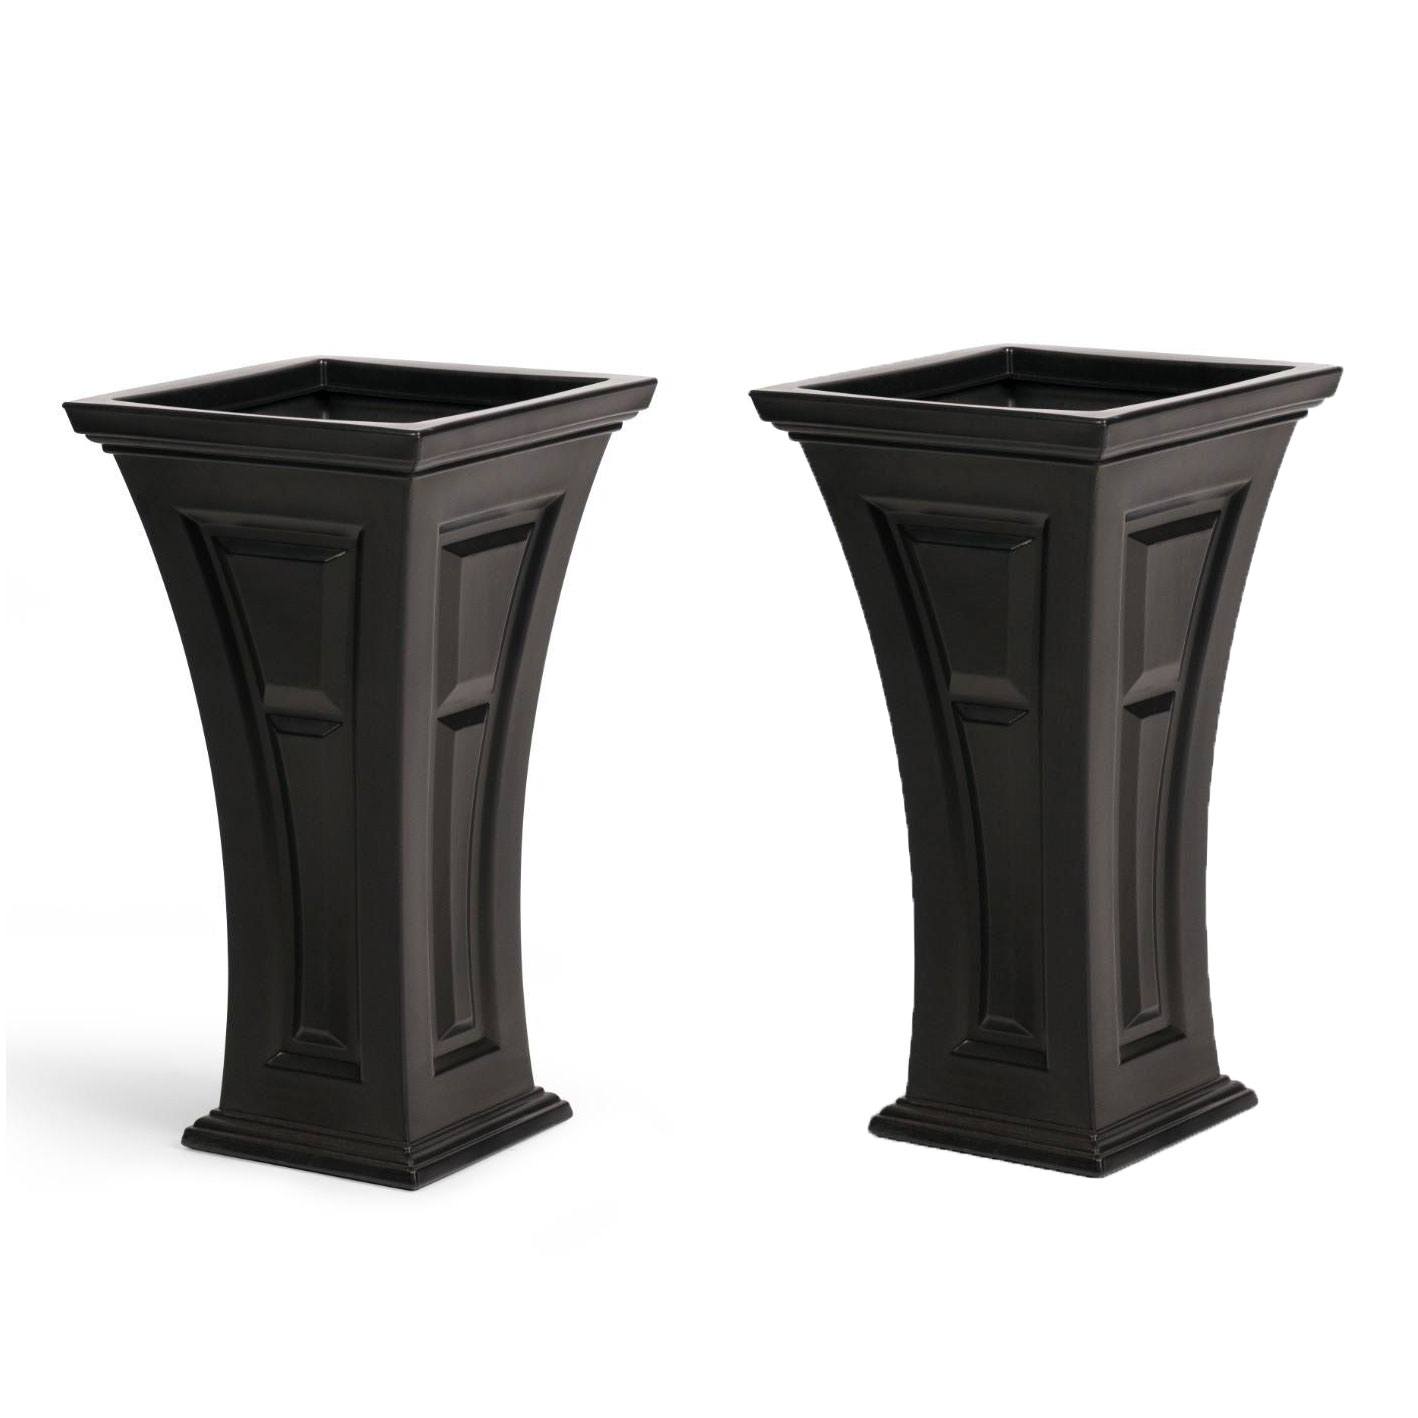 YIMBY Heritage Self Watering Large Tall Outdoor Garden Patio Planter Pot, 2 Pack by YIMBY